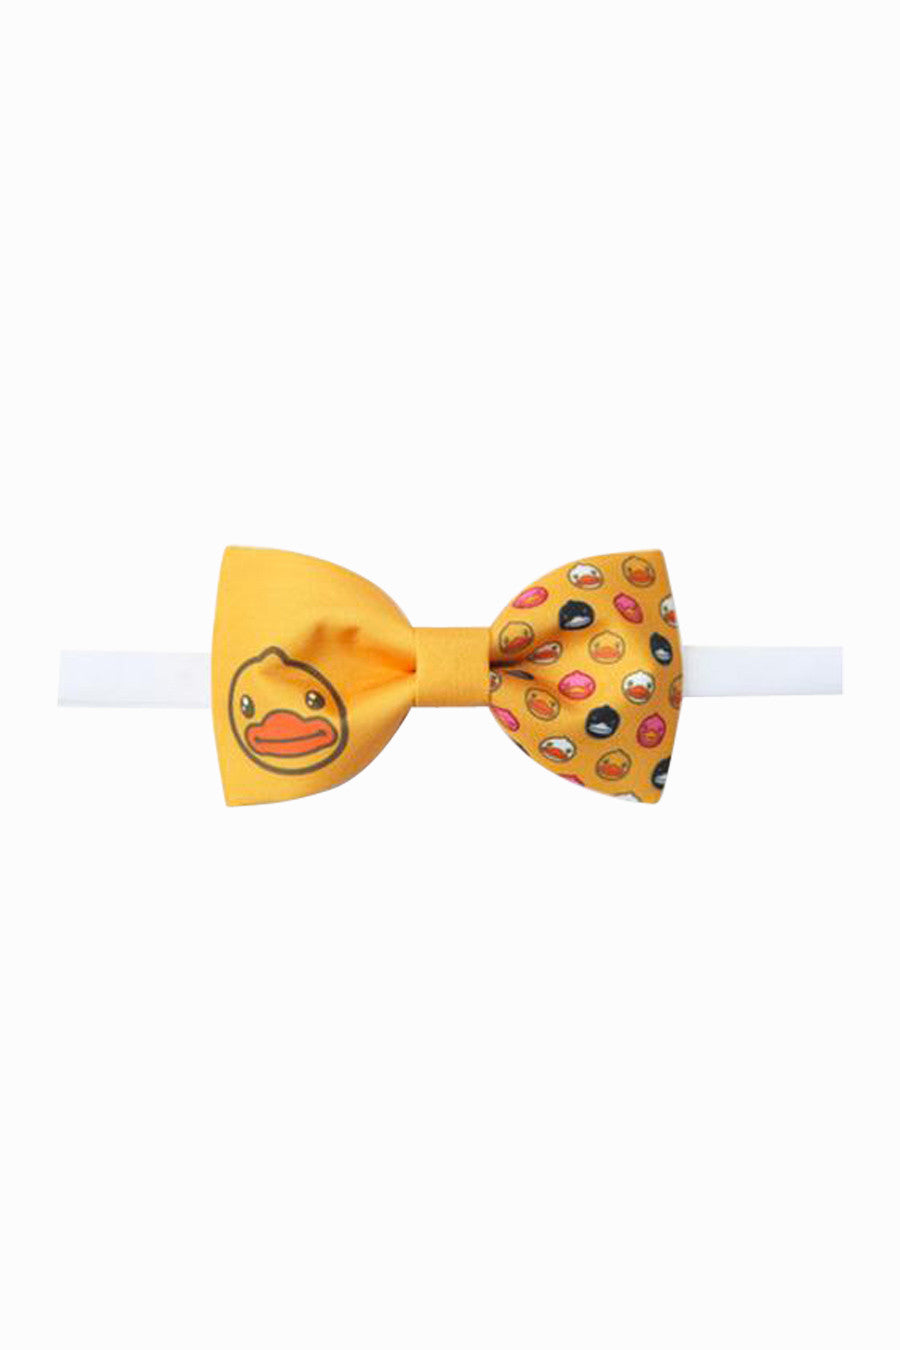 Funny Yellow Duck Bow Tie